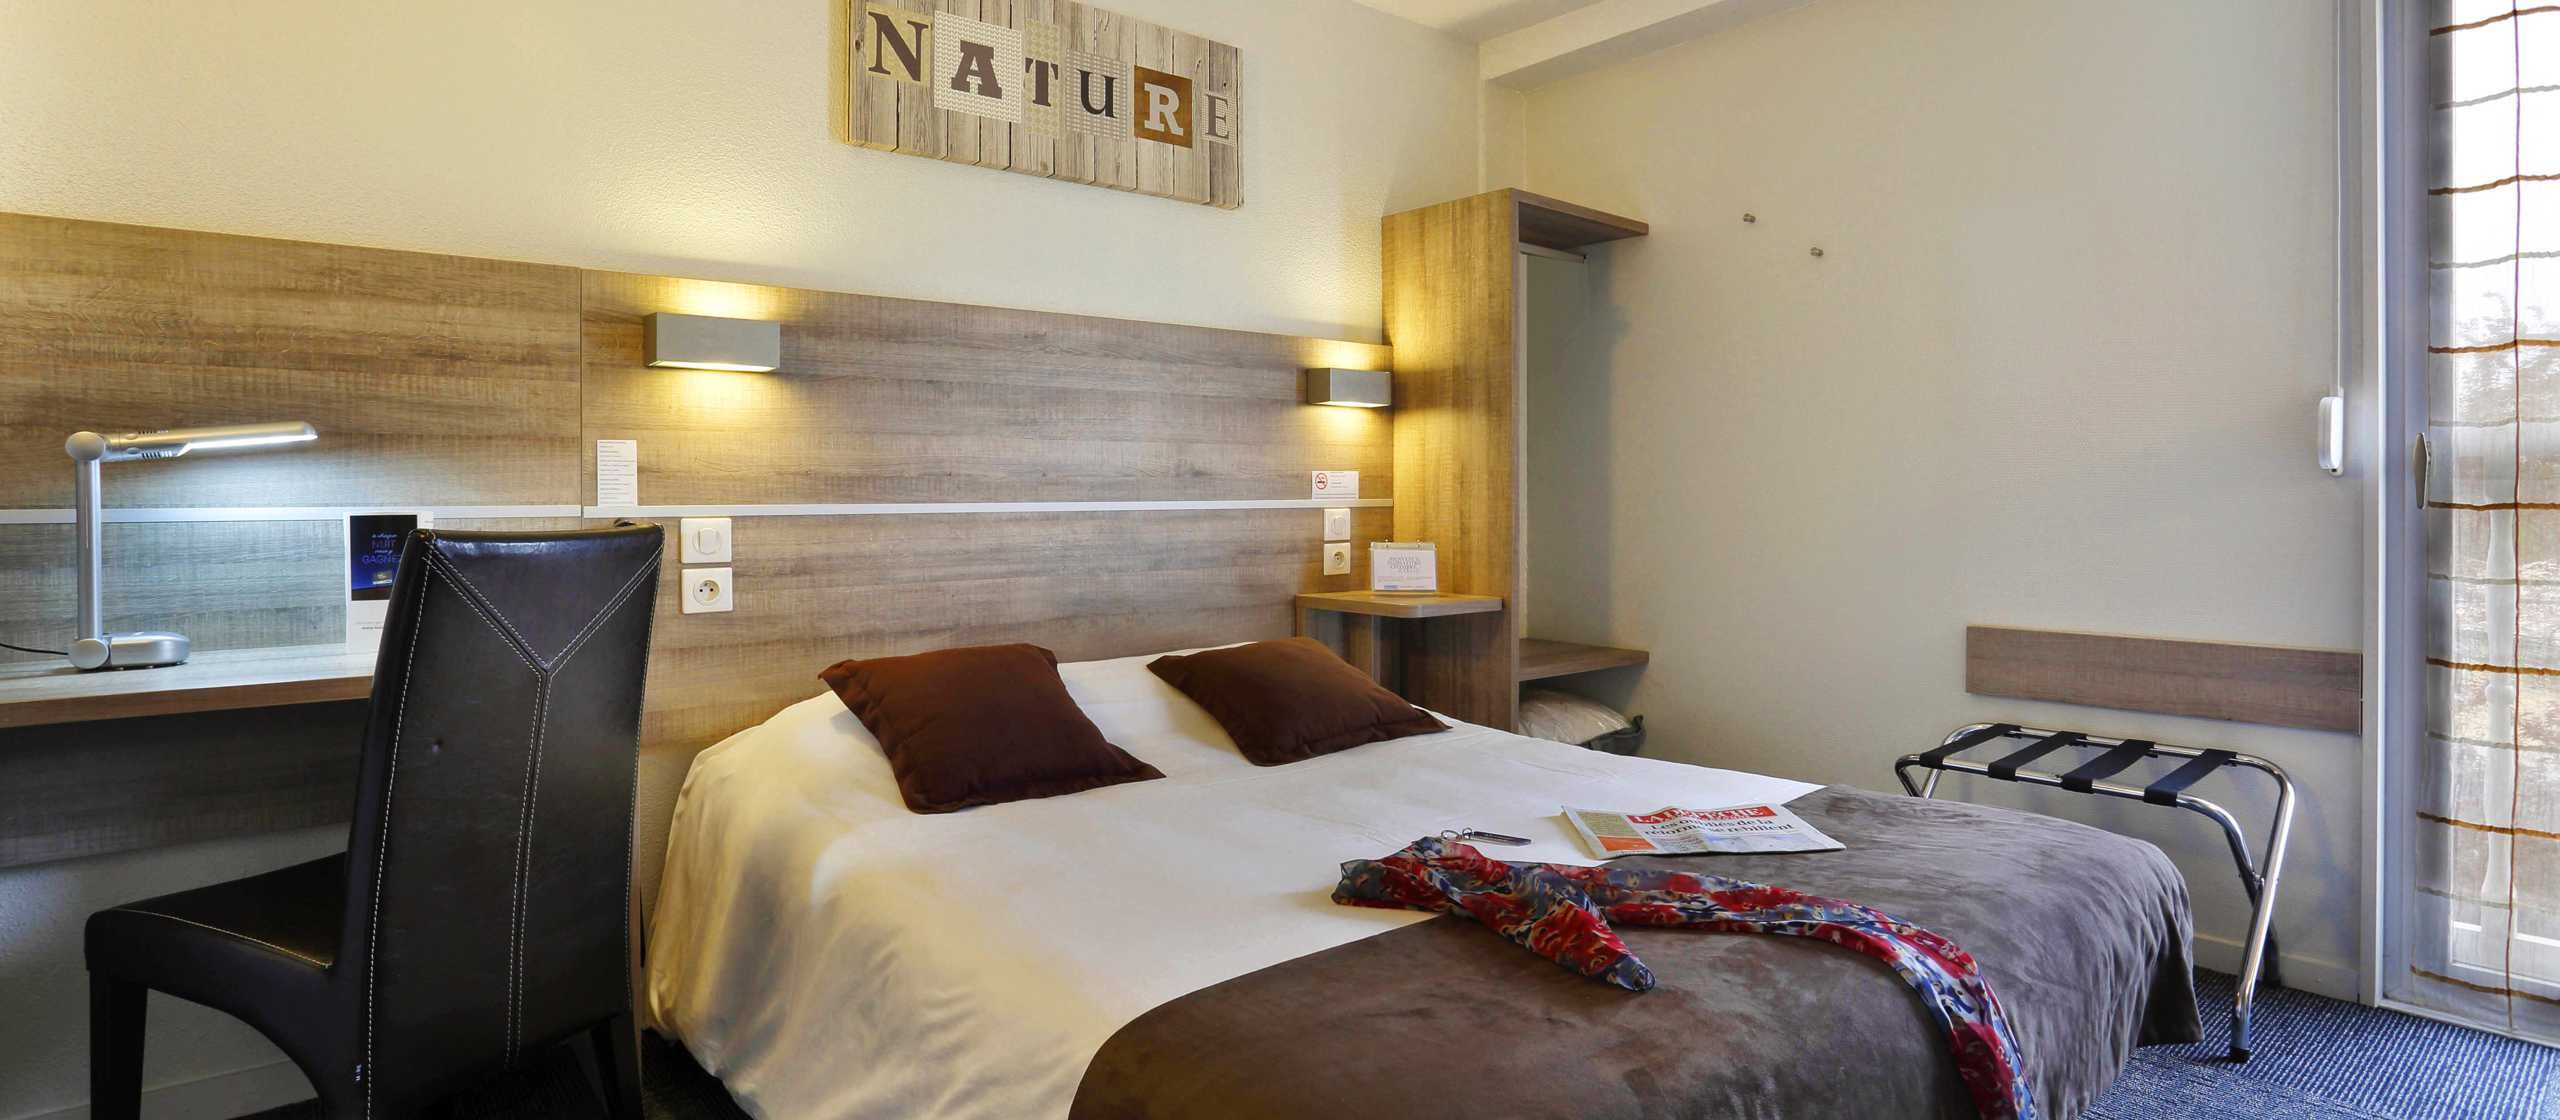 Hotel Kyriad Montauban - Chambre Double 1 à 2 personne